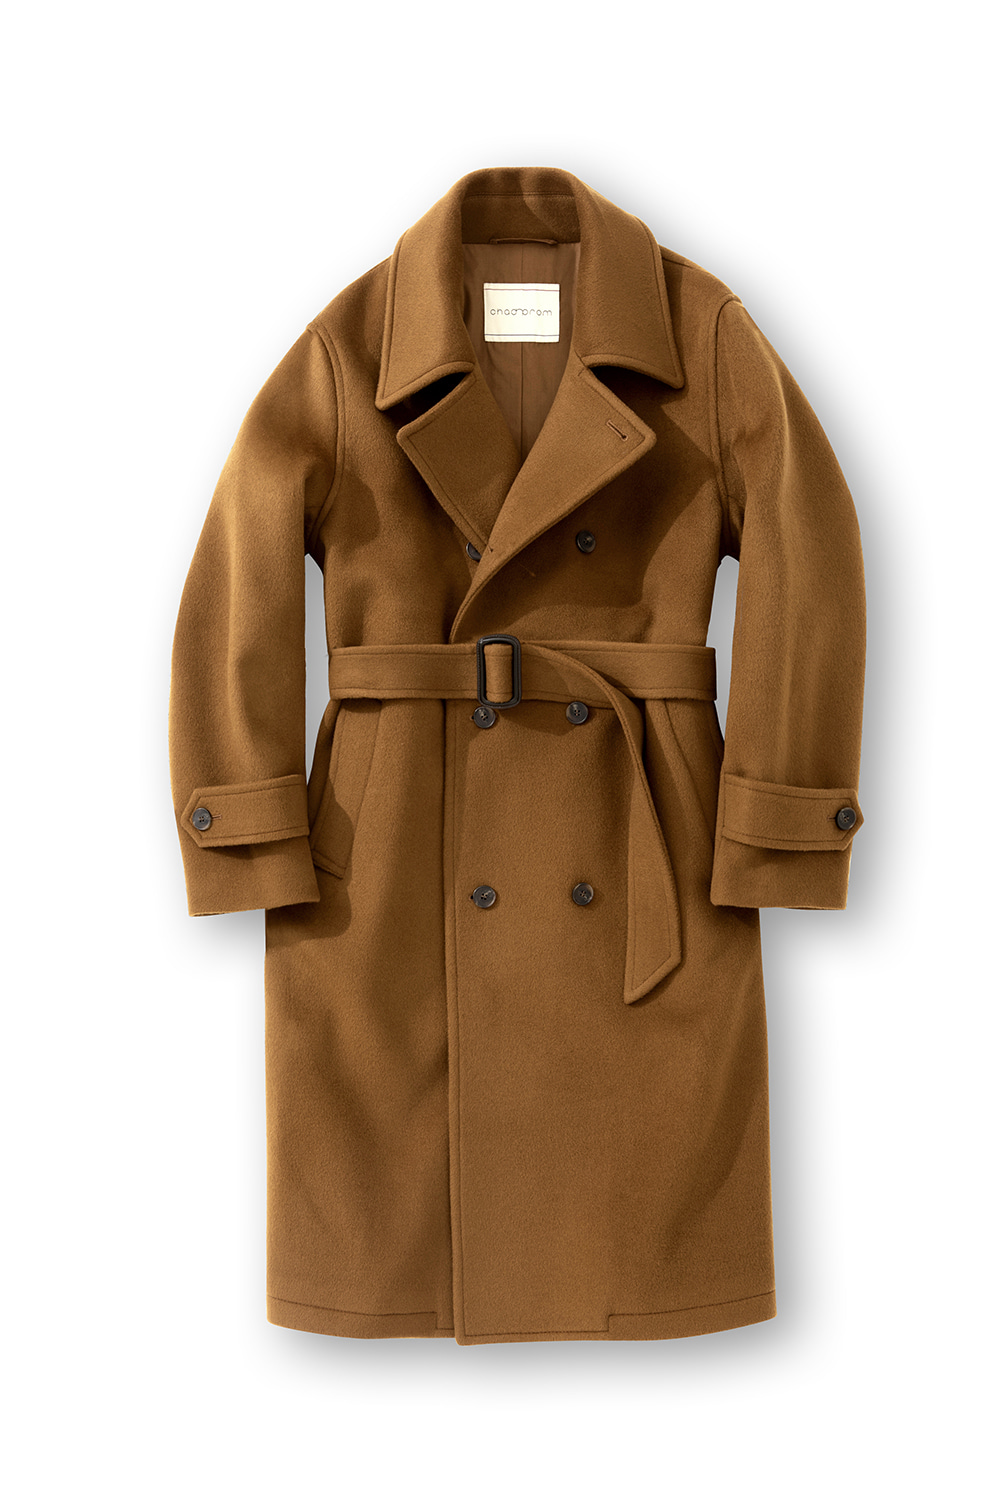 Heavy Wool Double belted coat - Camel CHADPROM(채드프롬)